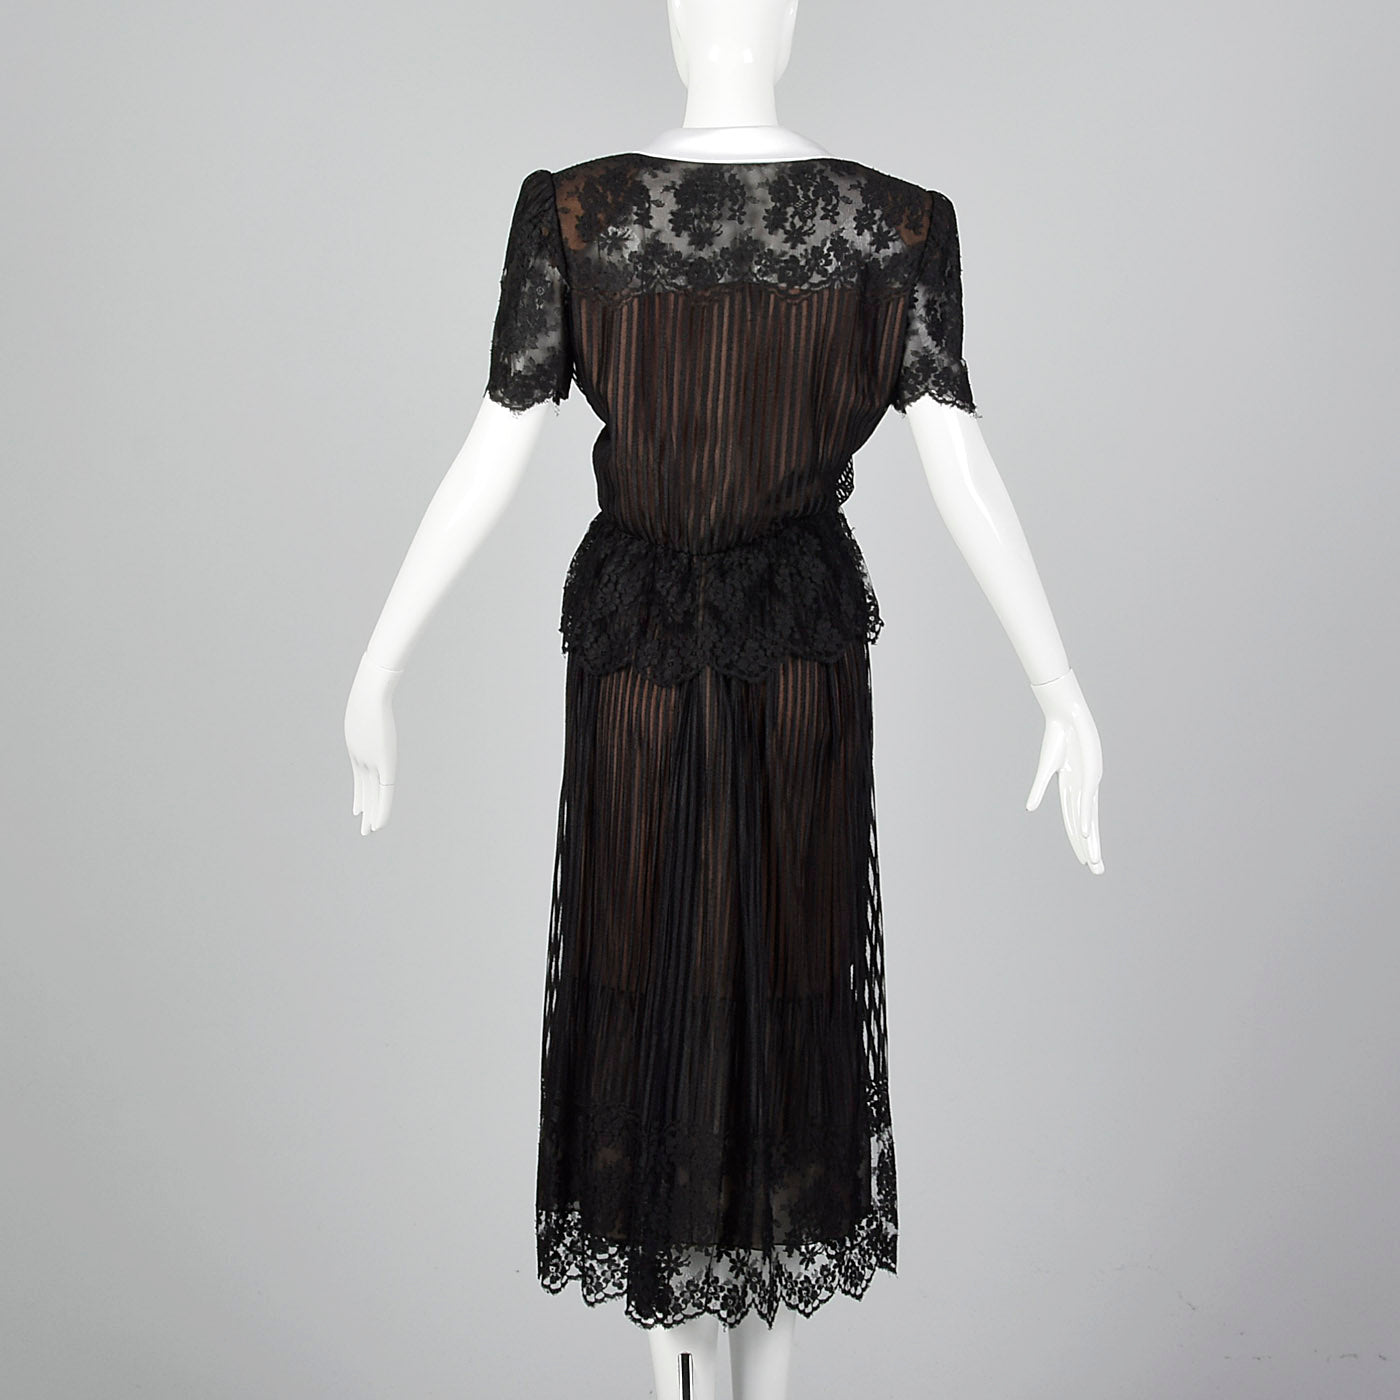 1980s Mignon Black Lace Separates